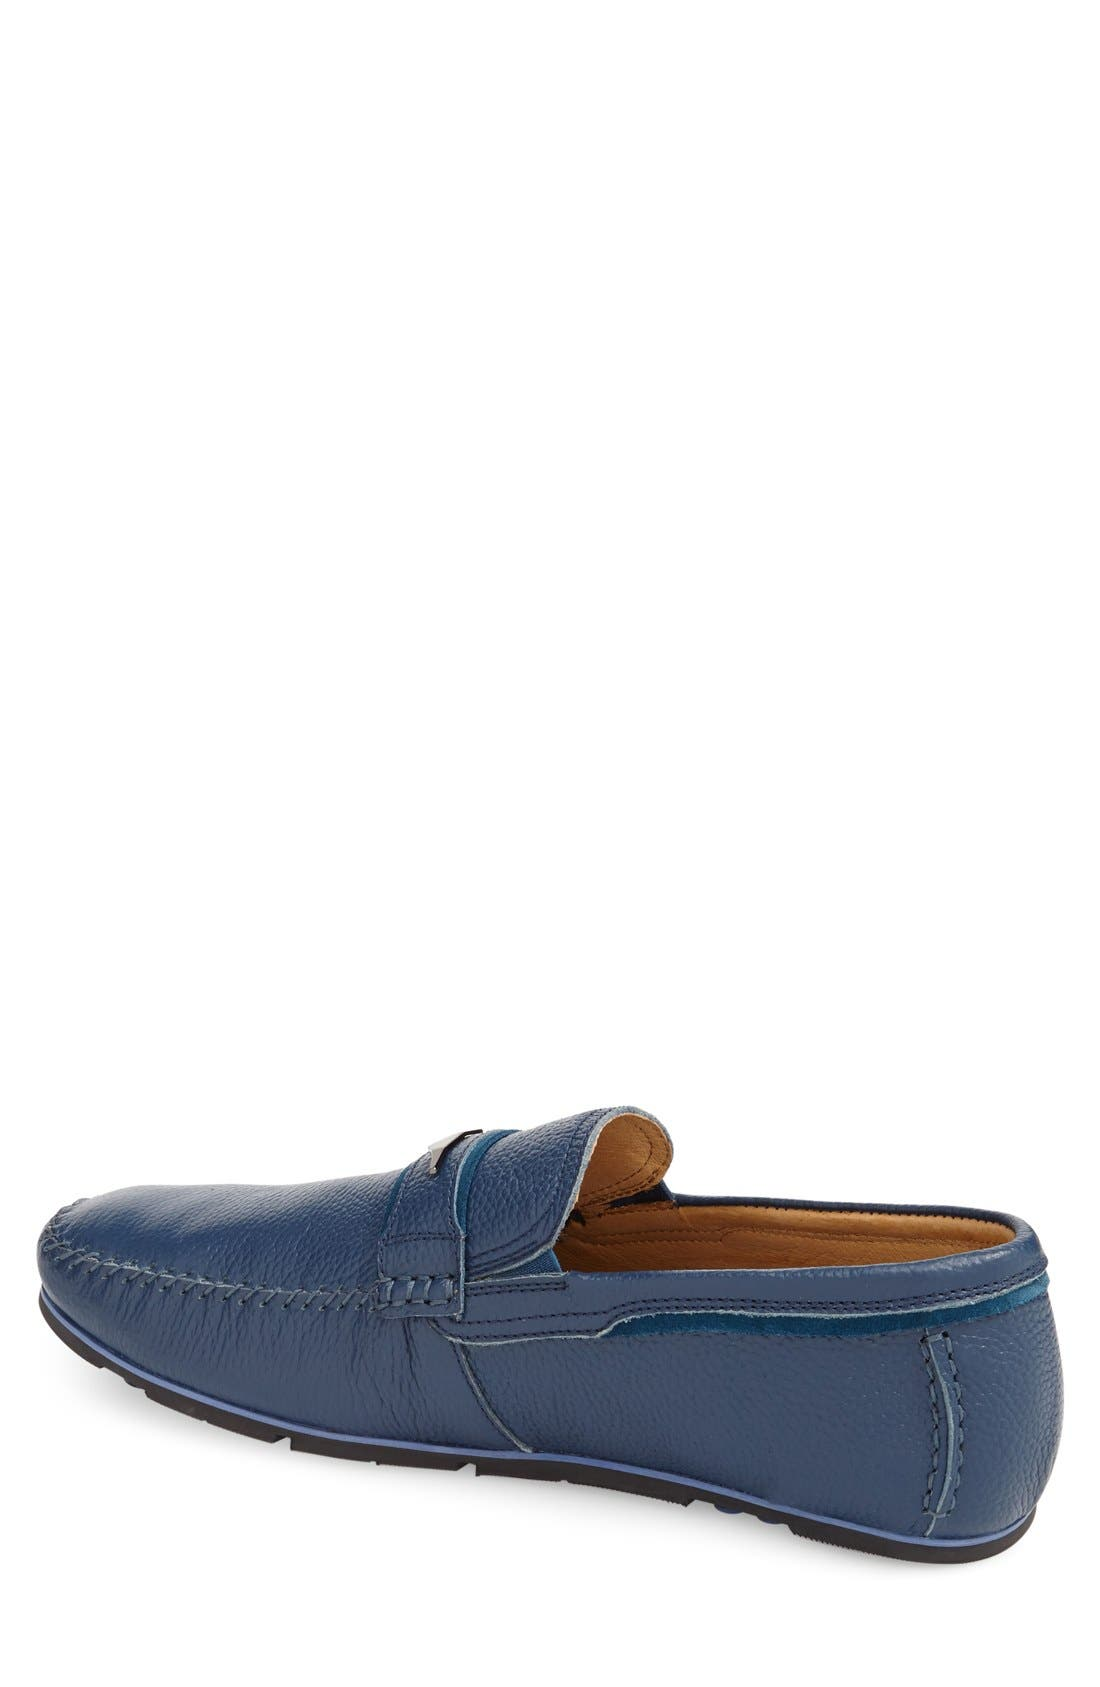 Leather Loafer,                             Alternate thumbnail 3, color,                             400